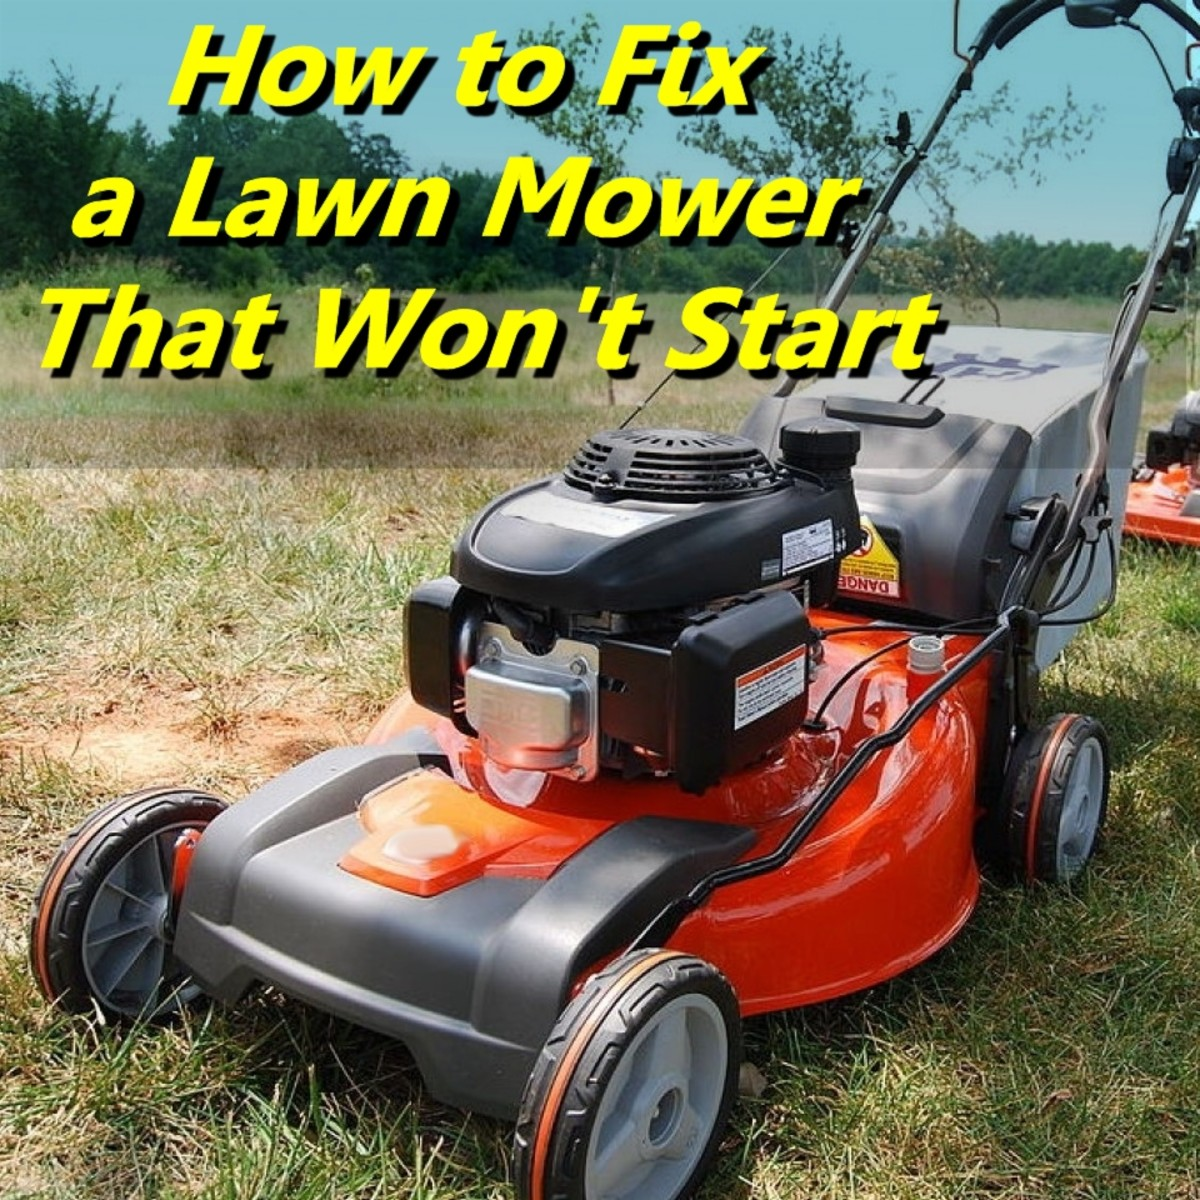 My Lawn Mower Won T Start 10 Top Troubleshooting Tips For